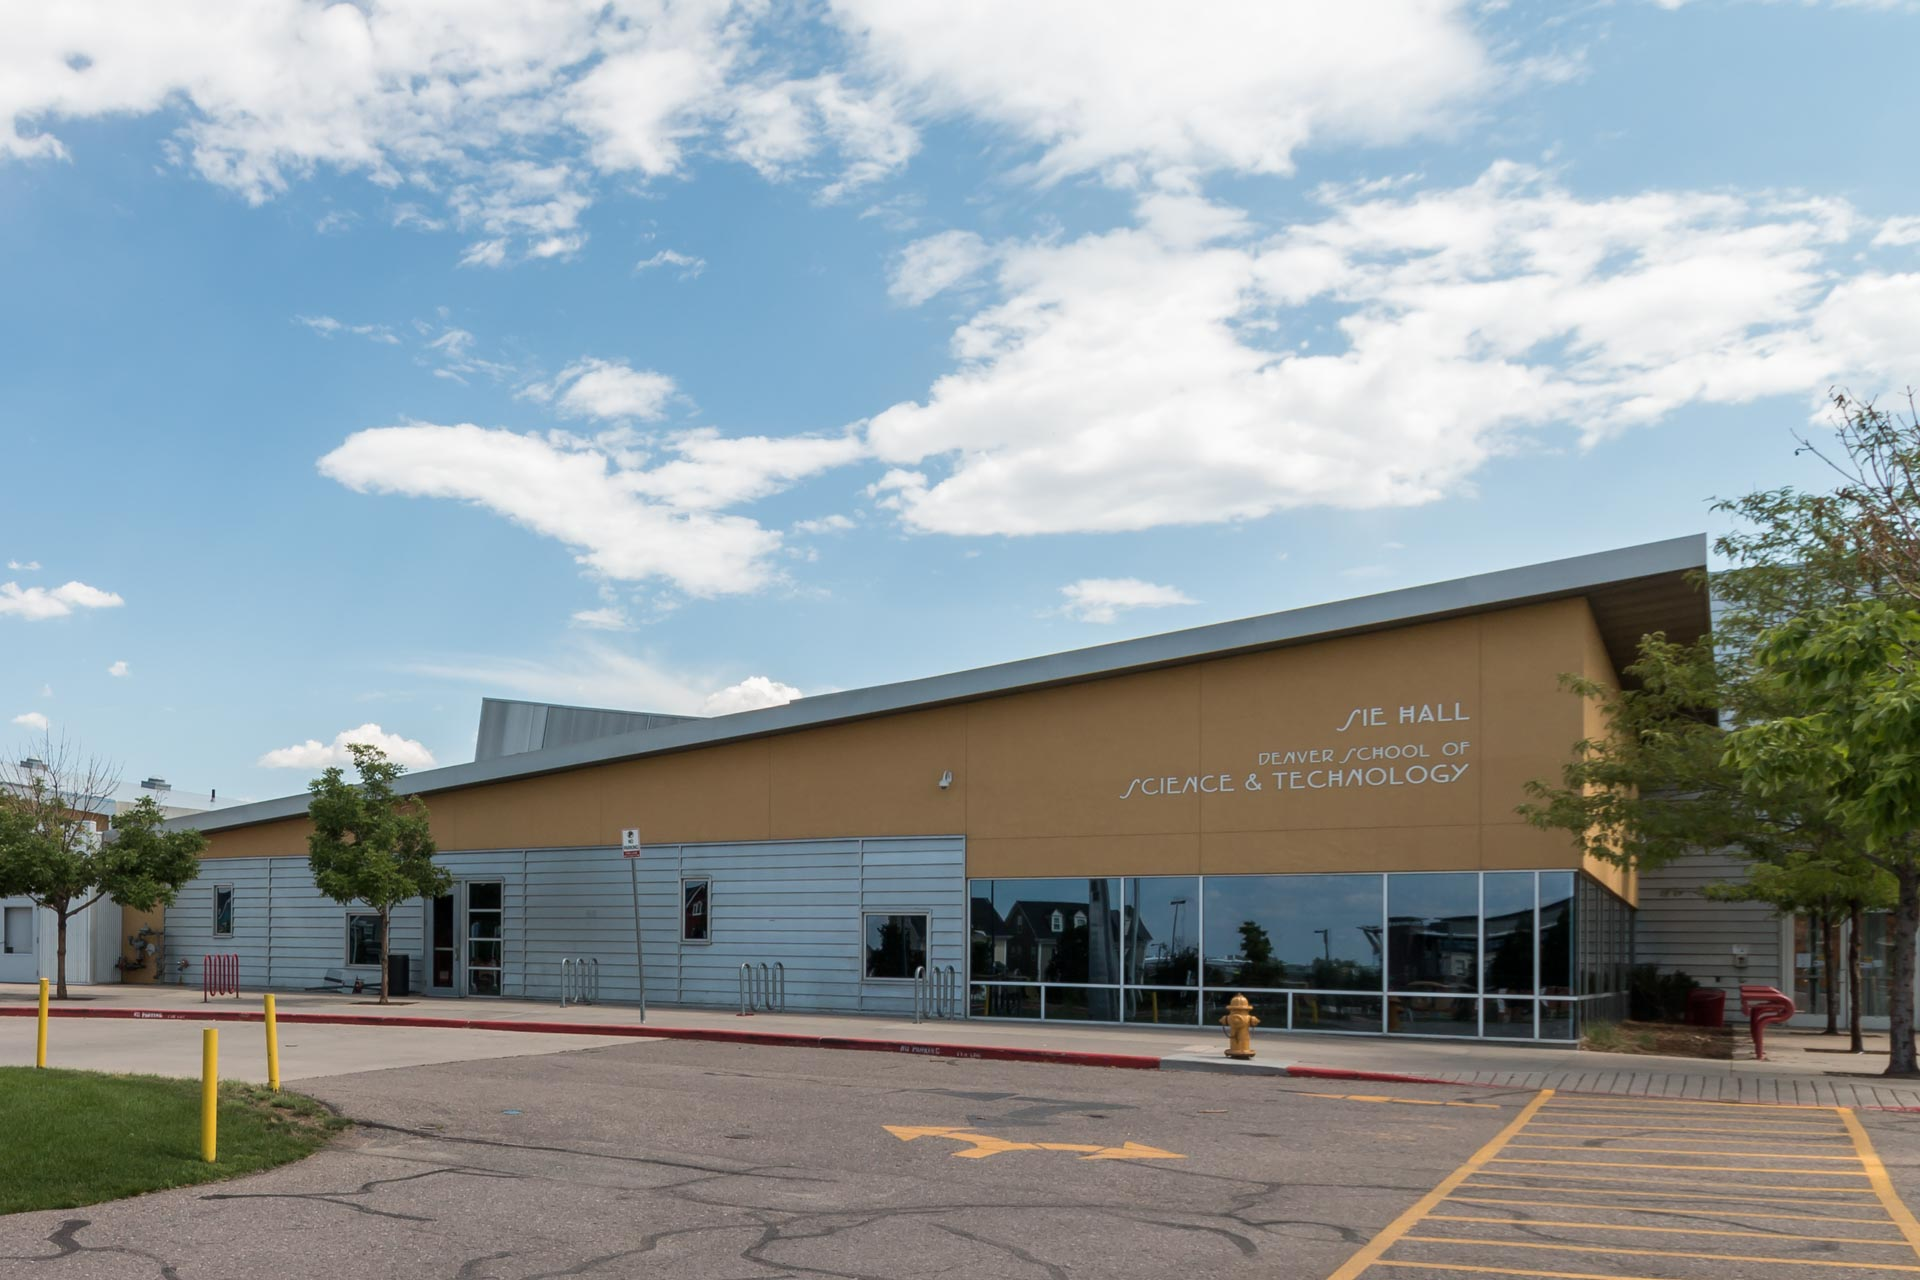 The Denver School of Science and Technology is located in Stapleton.